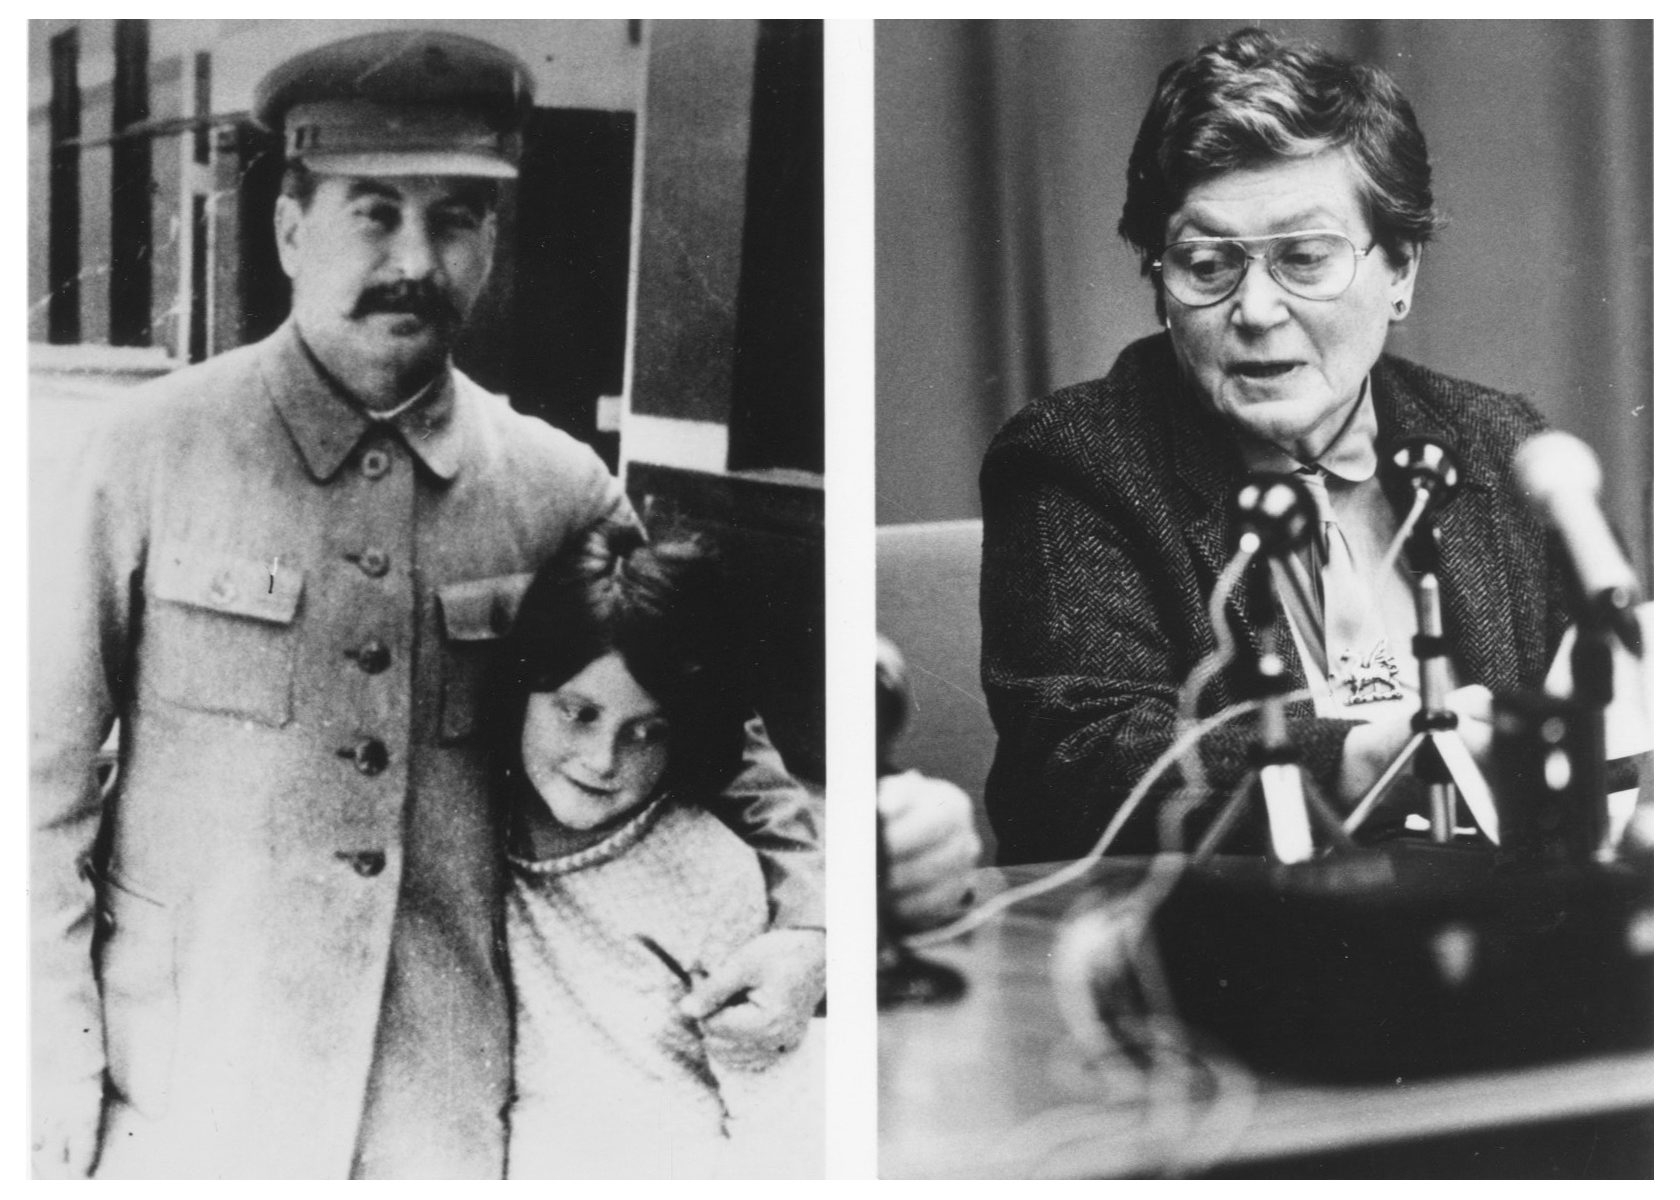 Soviet dictator Joseph Stalin with Svetlana at age 7, a year after her mother committed suicide. At right, Svetlana Alliluyeva discussed her notorious father in a rare interview.